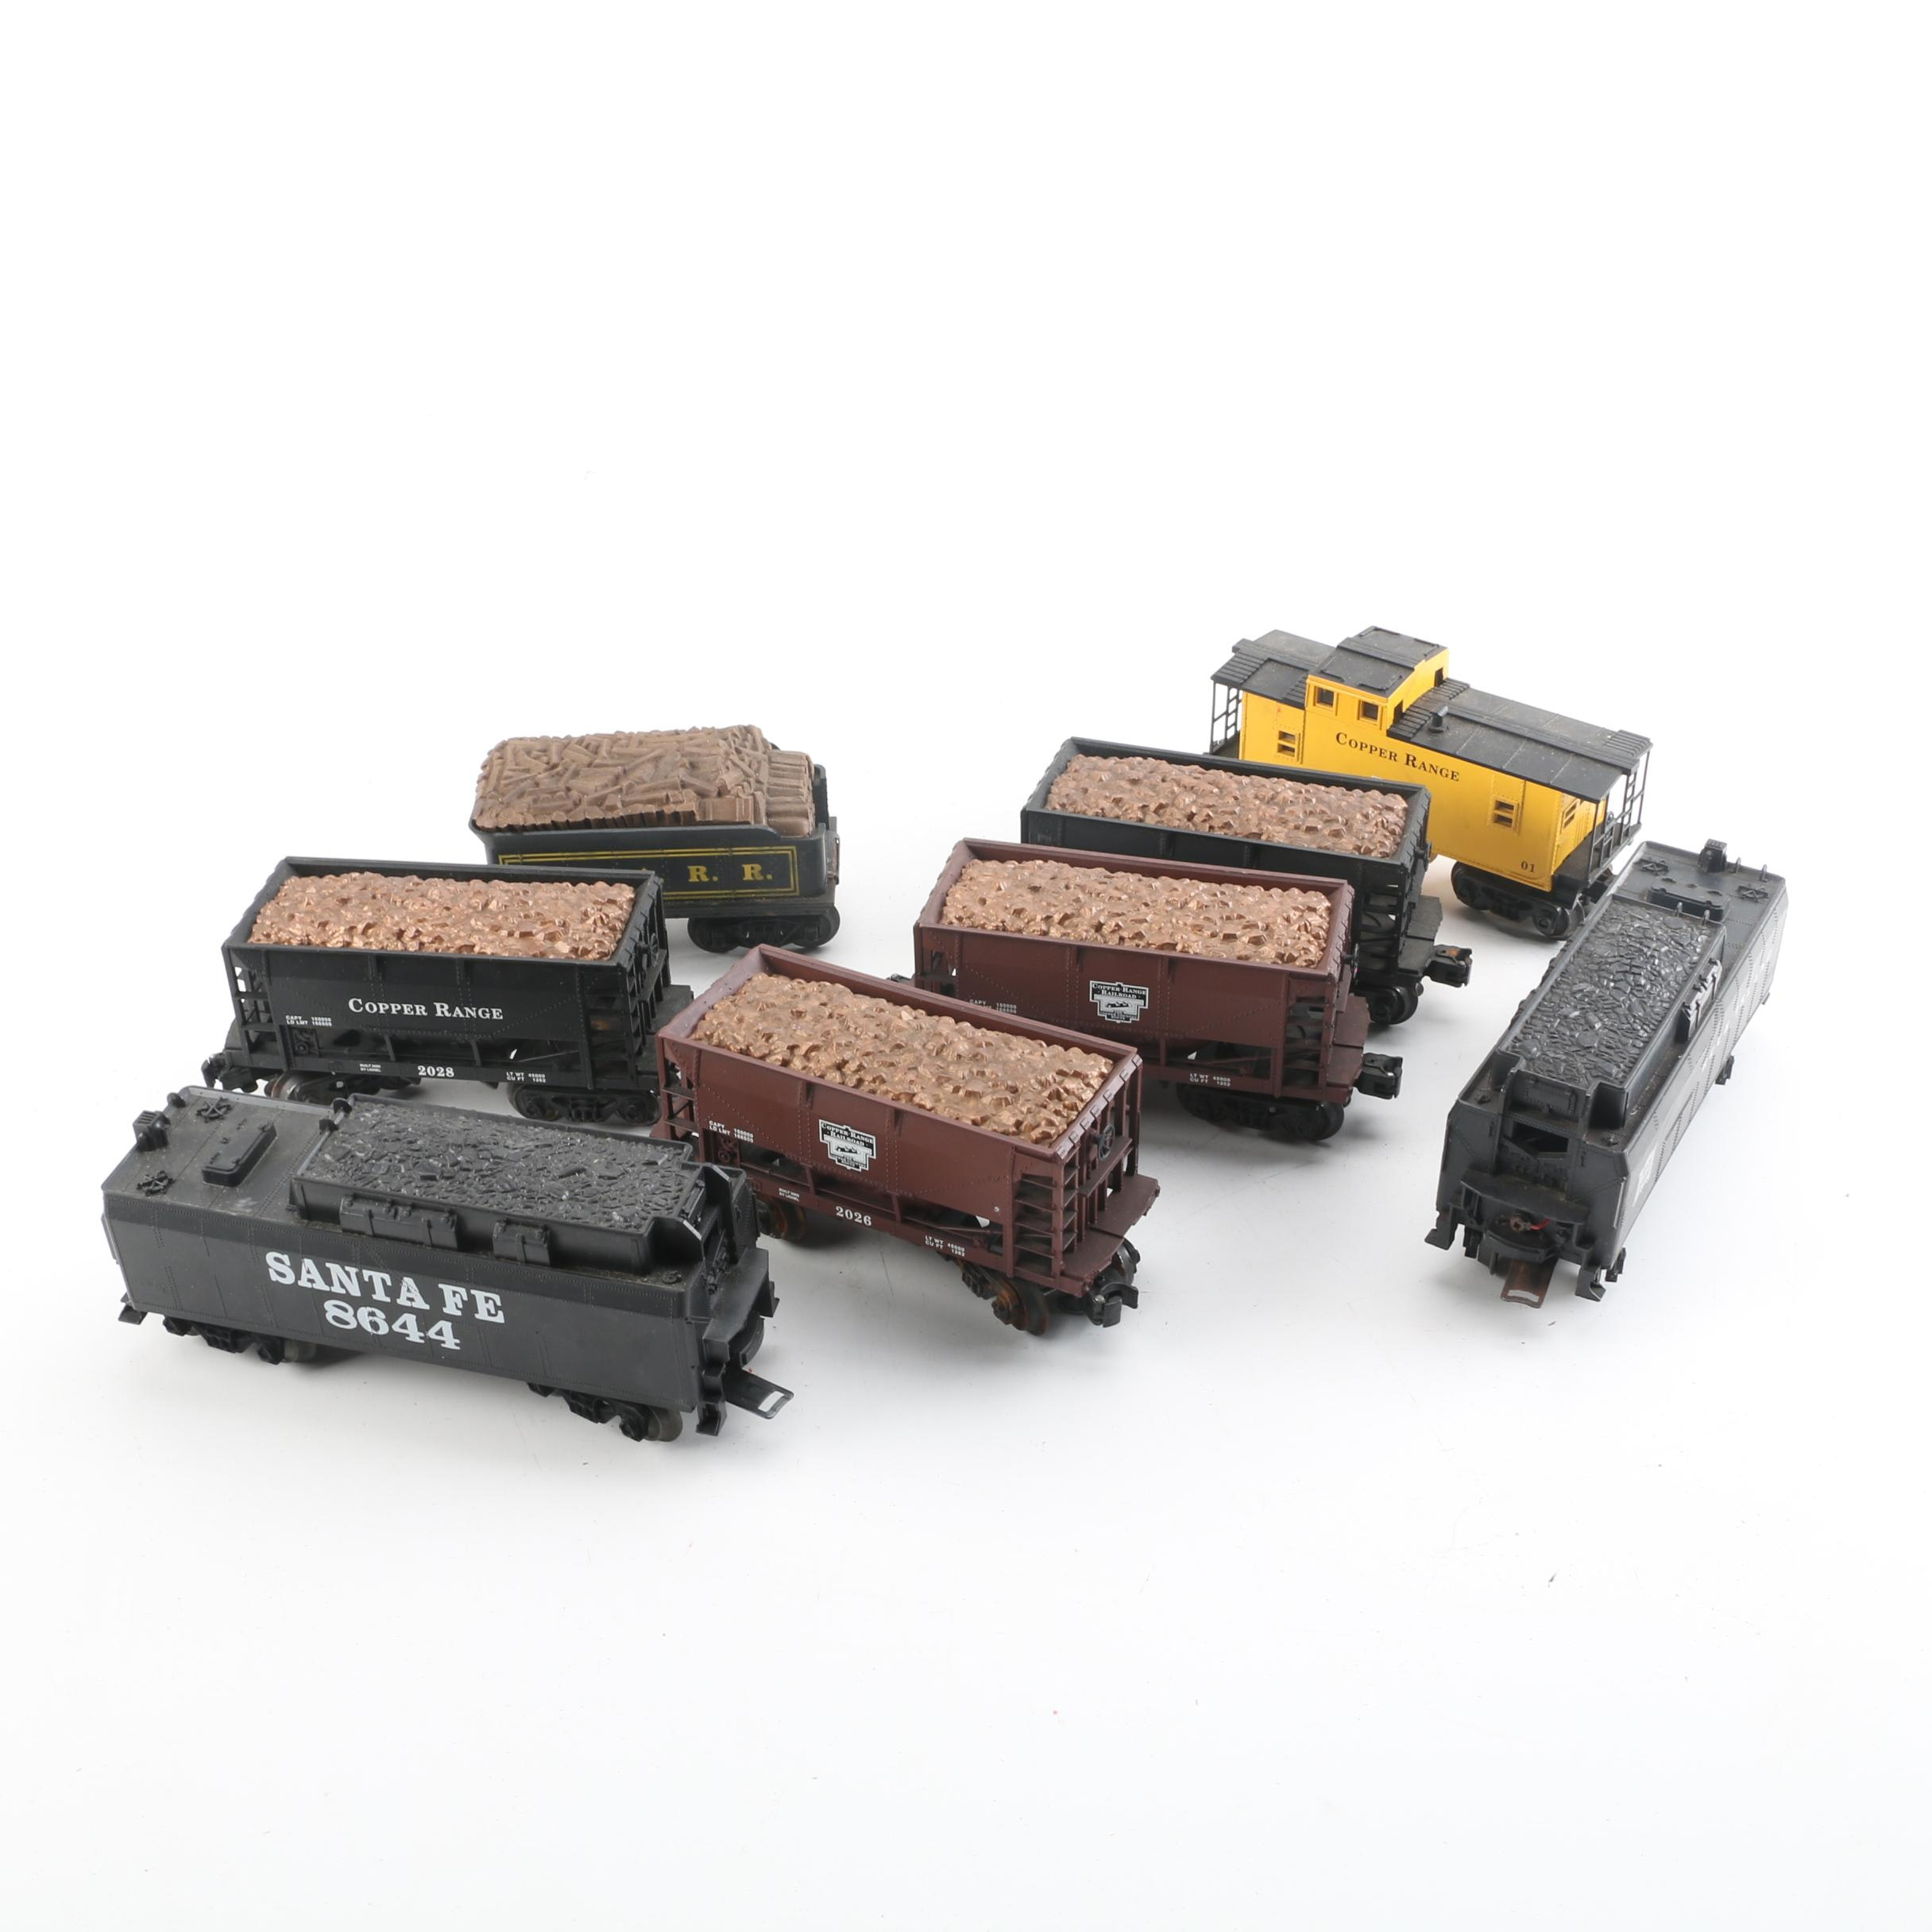 Lionel Copper Range and Other Train Cars